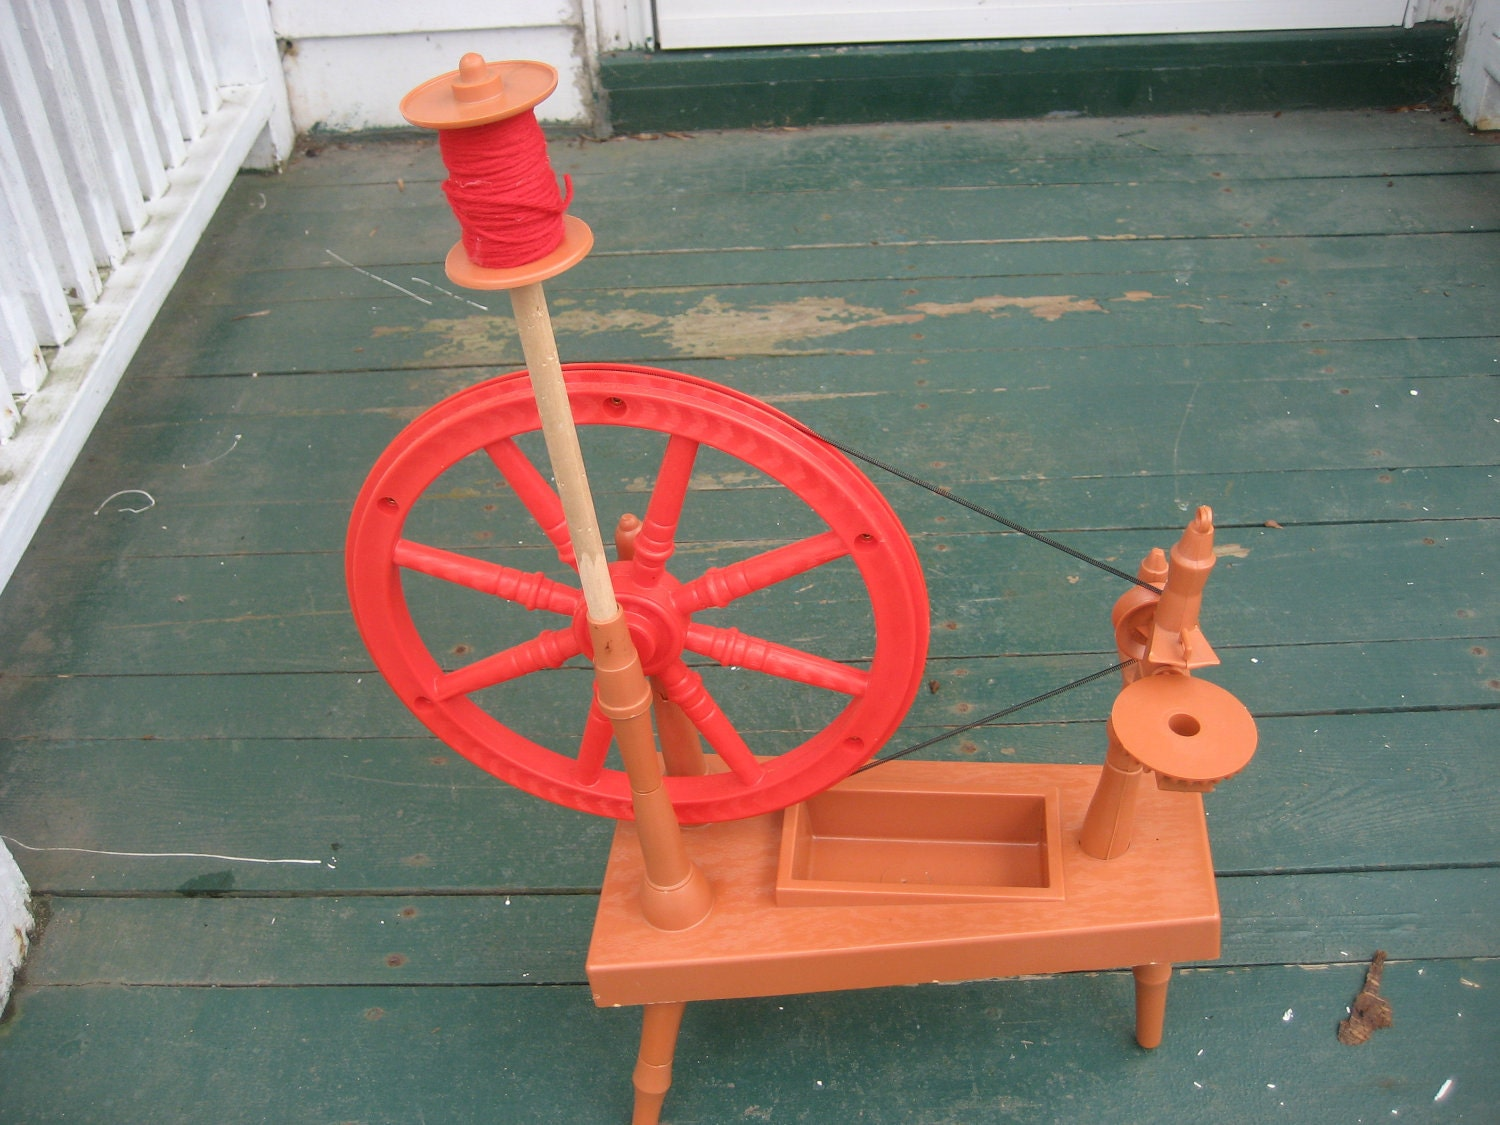 Knitting Wheel Projects : Remco little red spinning wheel knitting toy by gngsvintage